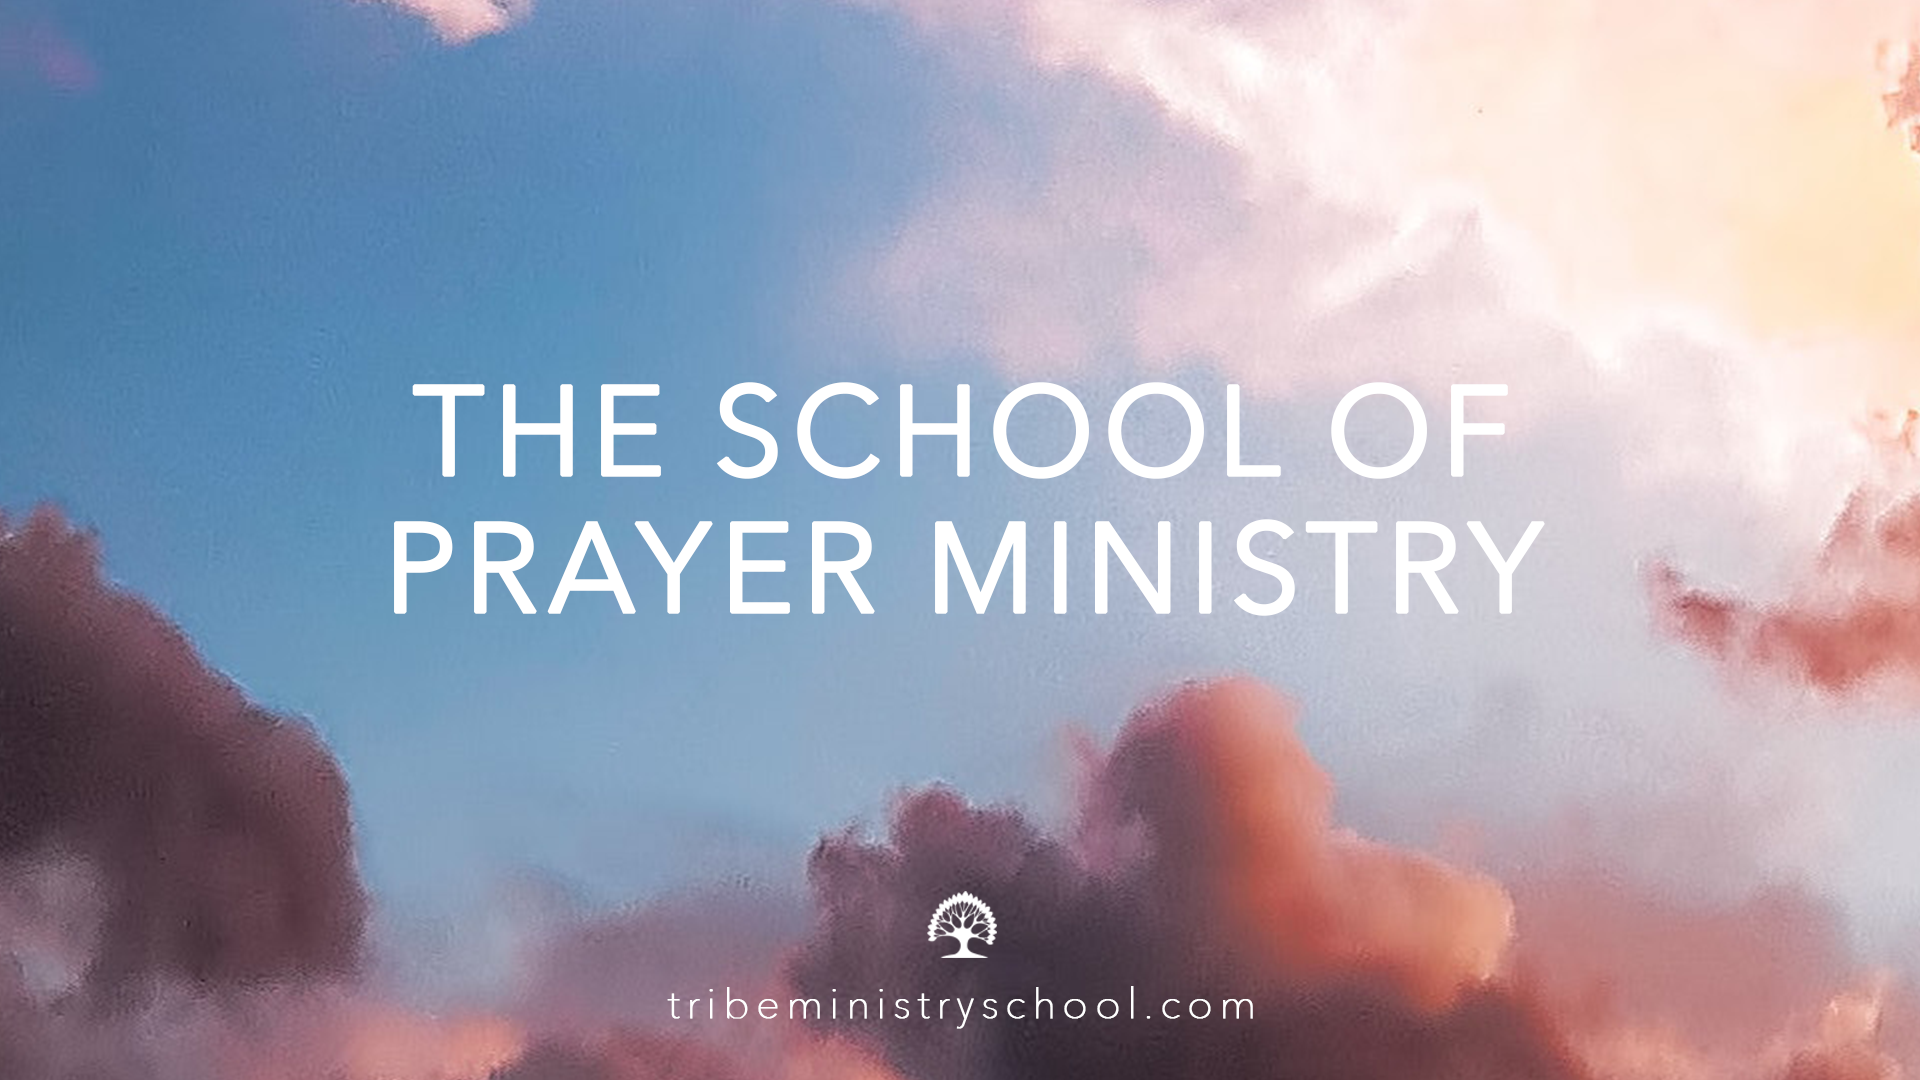 THE SCHOOL OF PRAYER MINISTRY